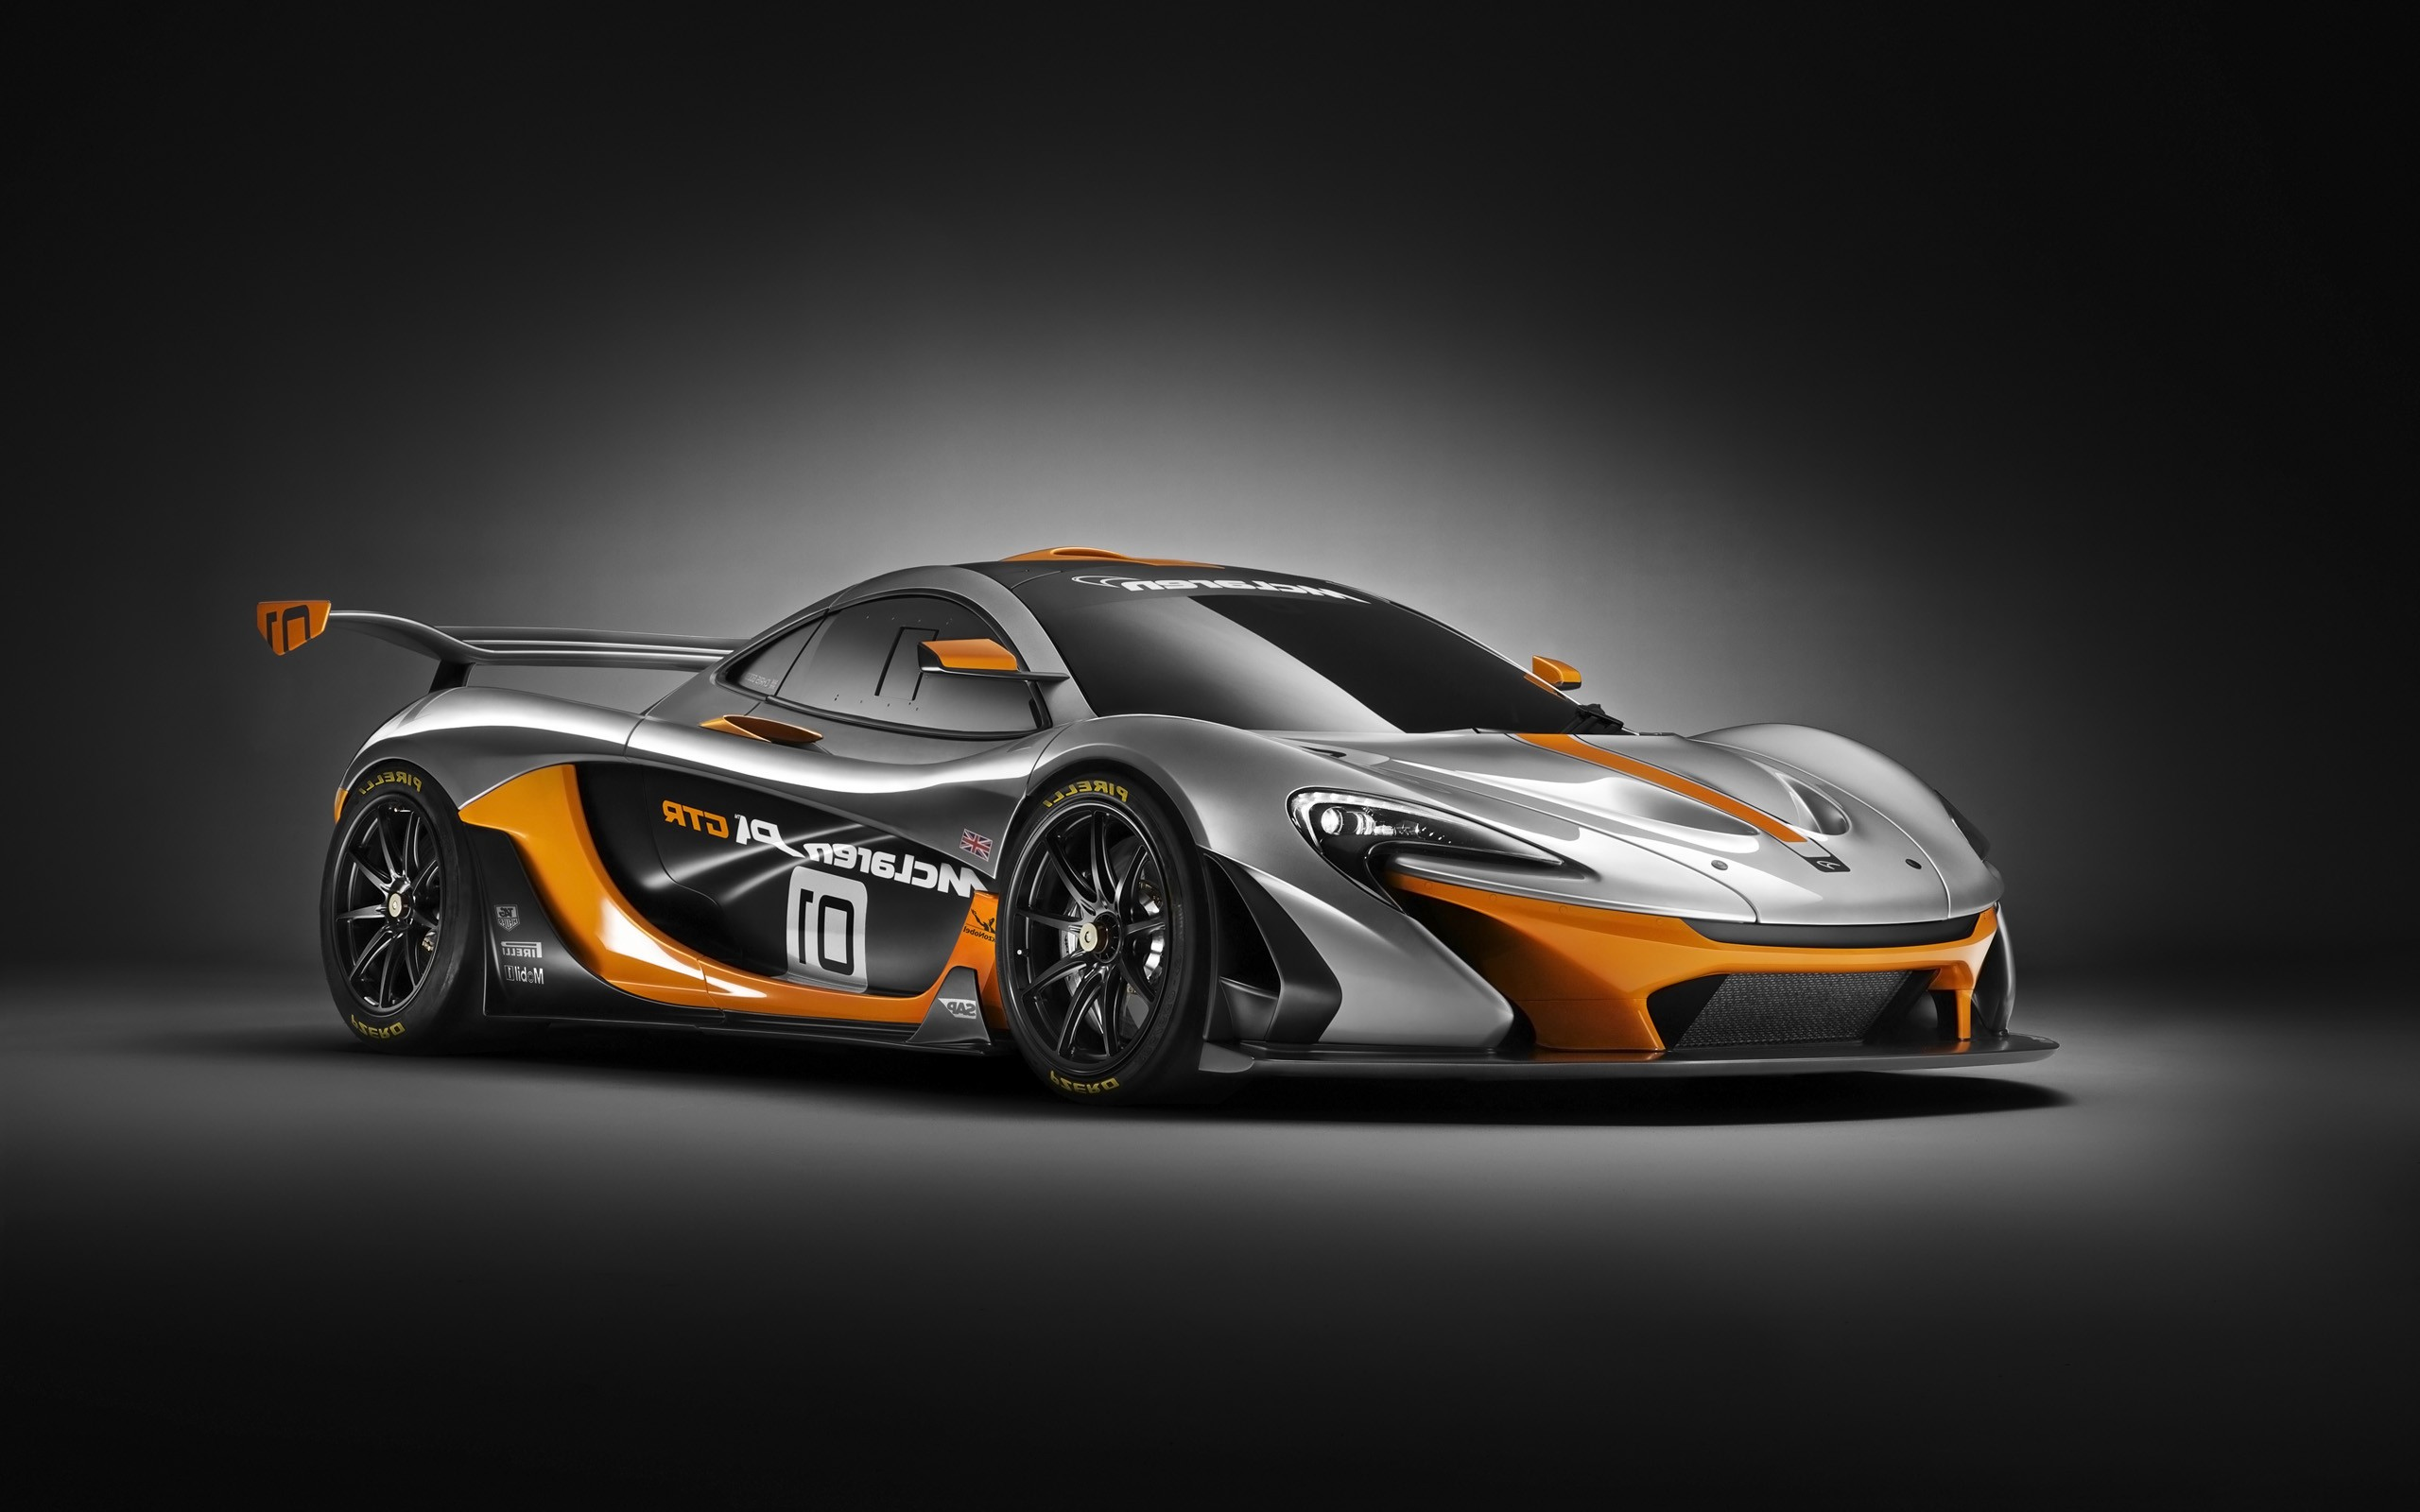 Mclaren P1 Gtr Logo >> Mclaren P1 GTR Super Car Concept, HD Cars, 4k Wallpapers, Images, Backgrounds, Photos and Pictures